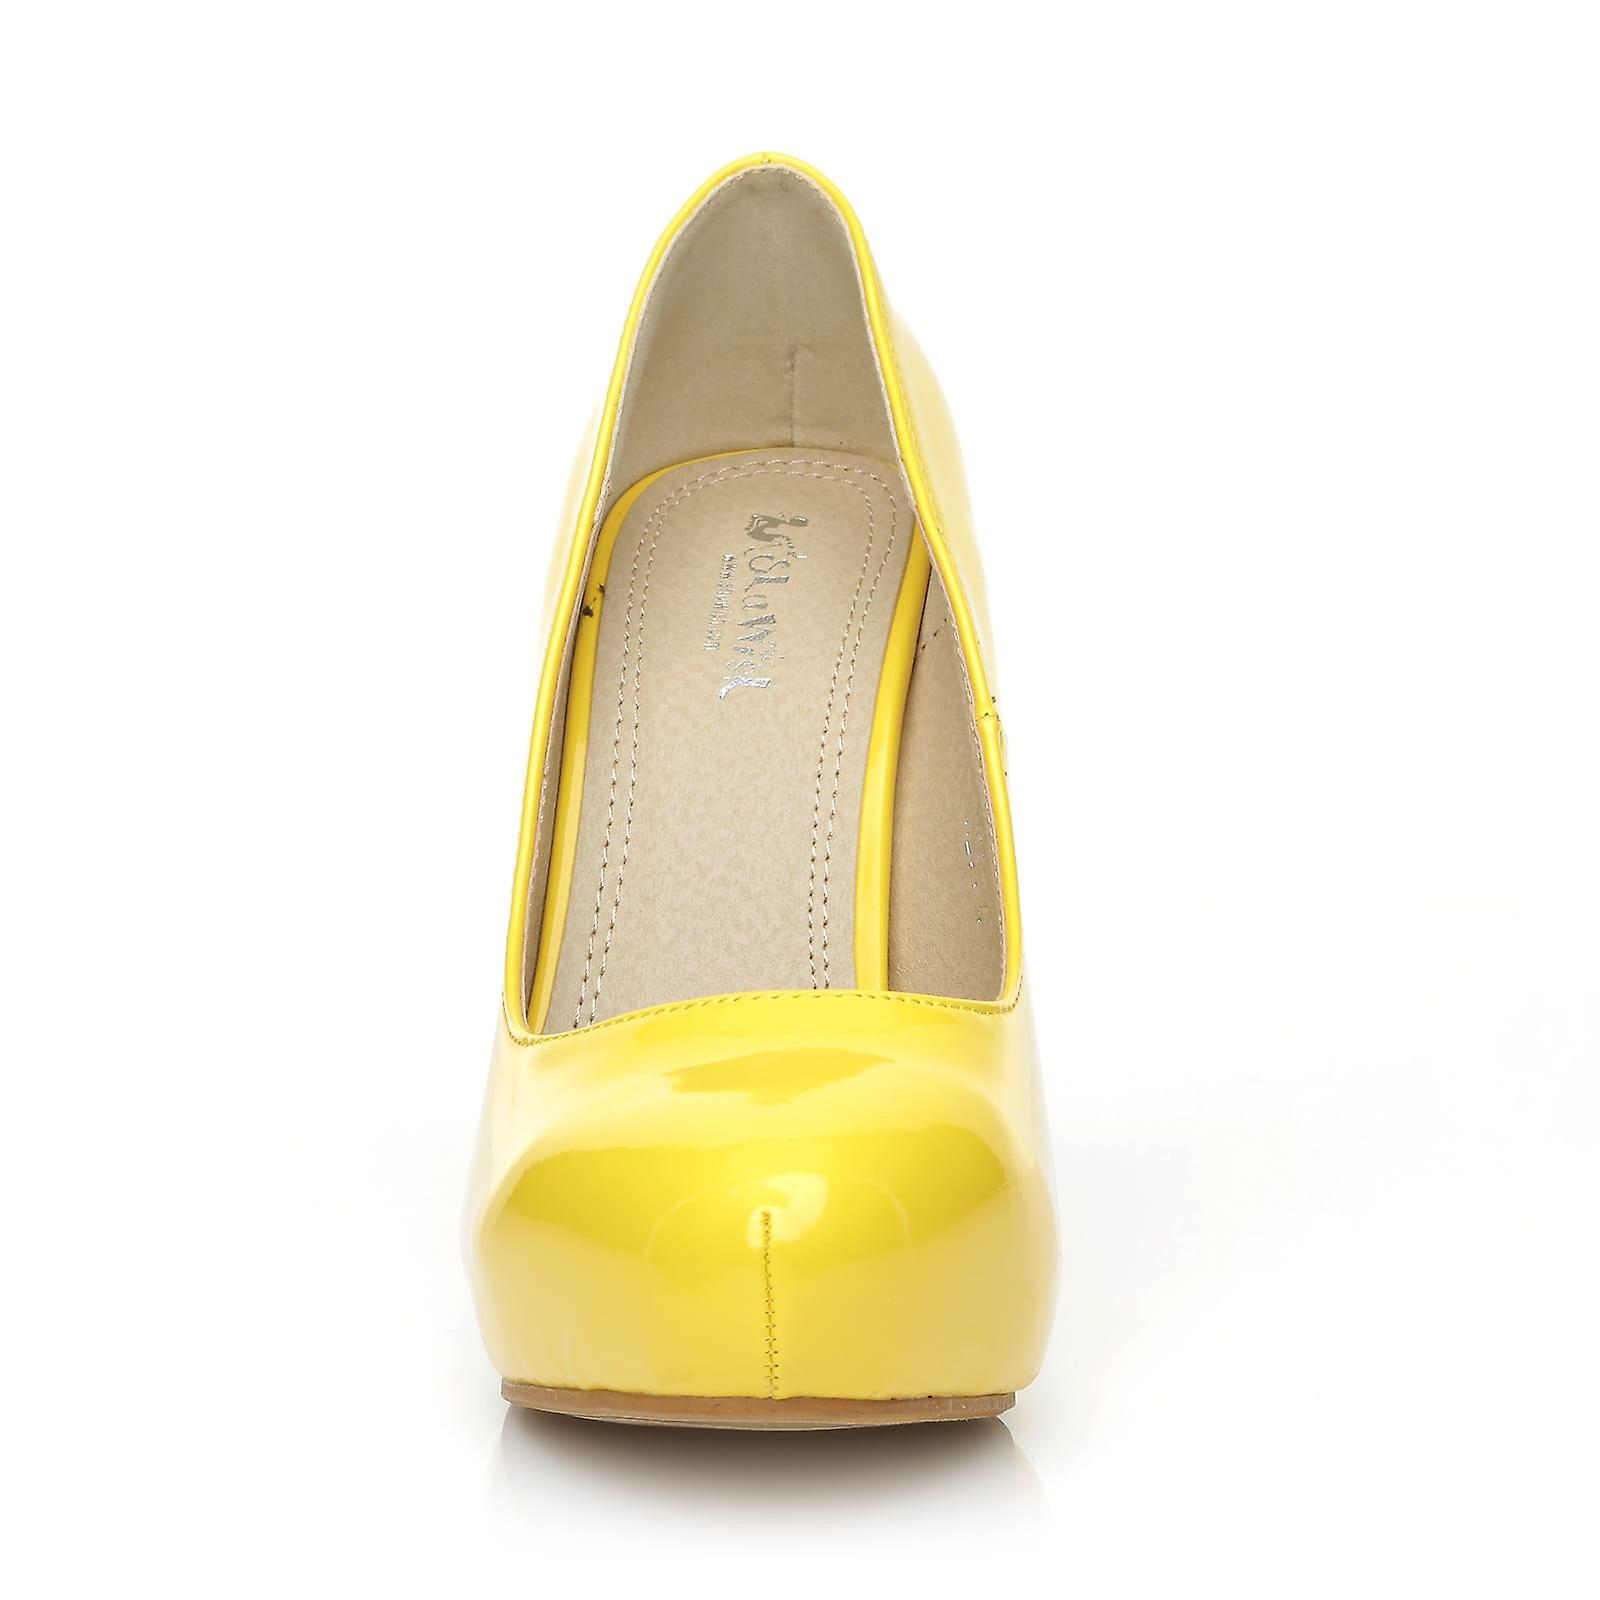 Yellow High Court Patent Shoes Stiletto H251 Leather Platform PU Concealed Heel pAOgq6wnx6